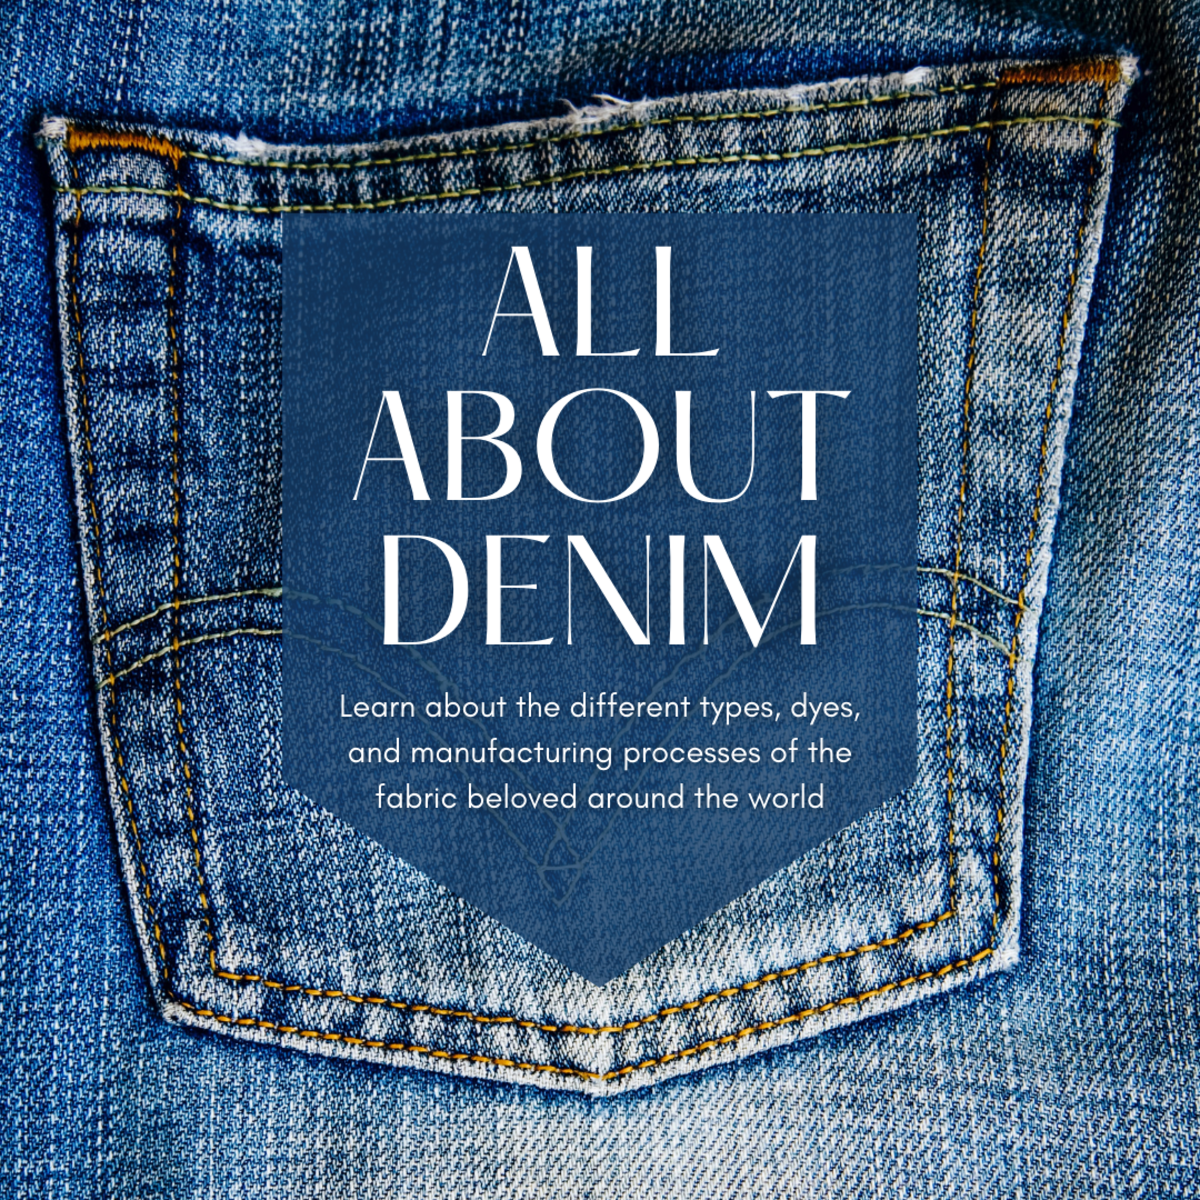 This article will break down everything you need to know about denim, one of the world's most beloved fabrics, including its history, types, properties, dyes, manufacturing processes, uses and care instructions.